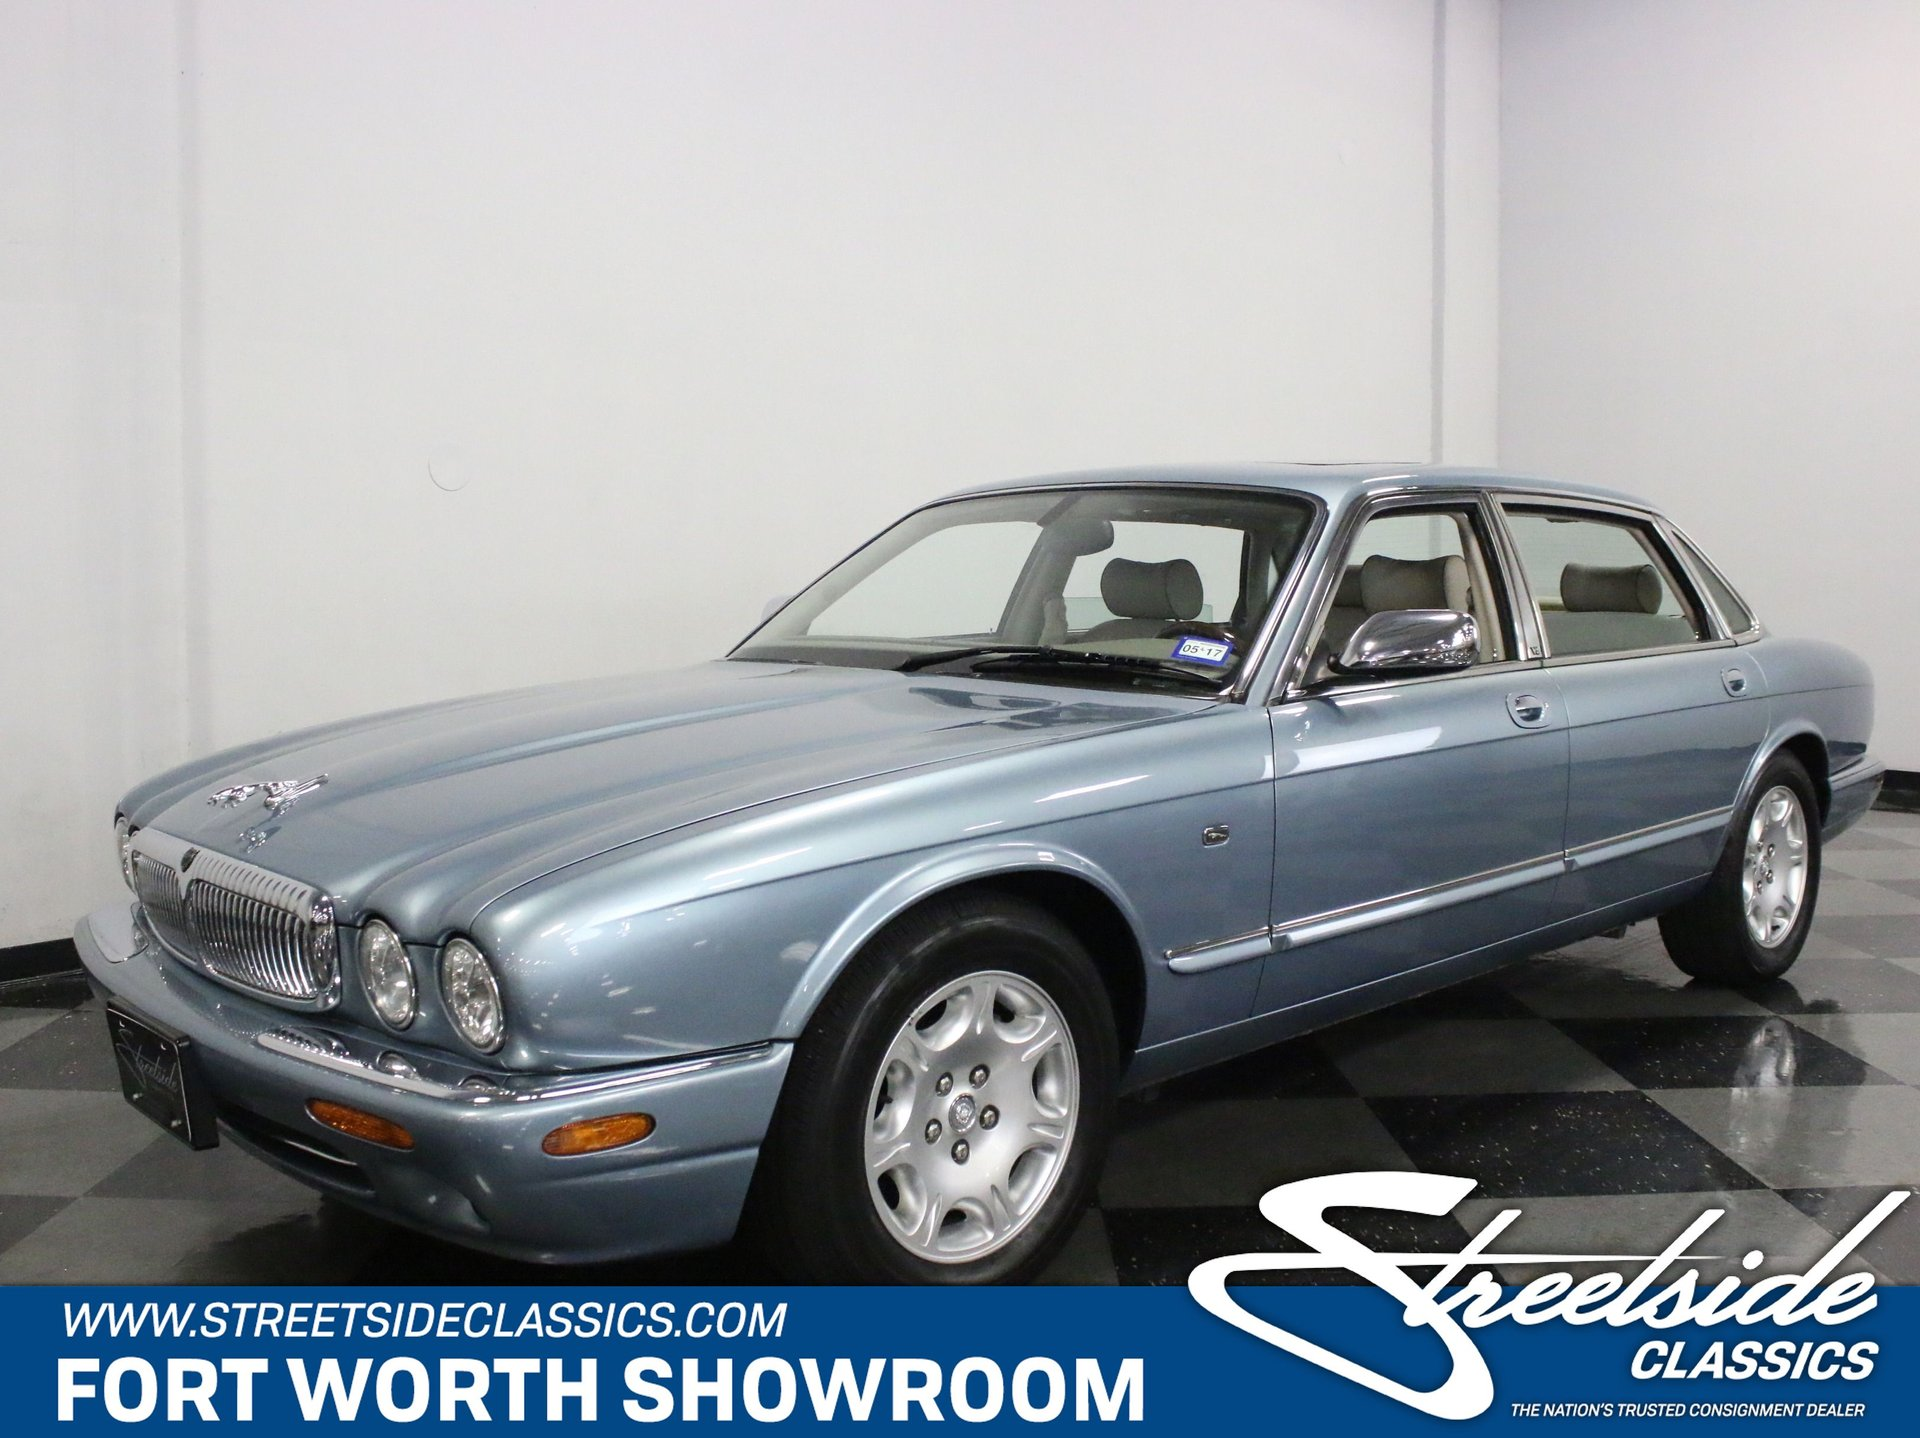 2002 Jaguar Xj8 L Classic Cars For Sale Streetside Classics The Nation S 1 Consignment Dealer